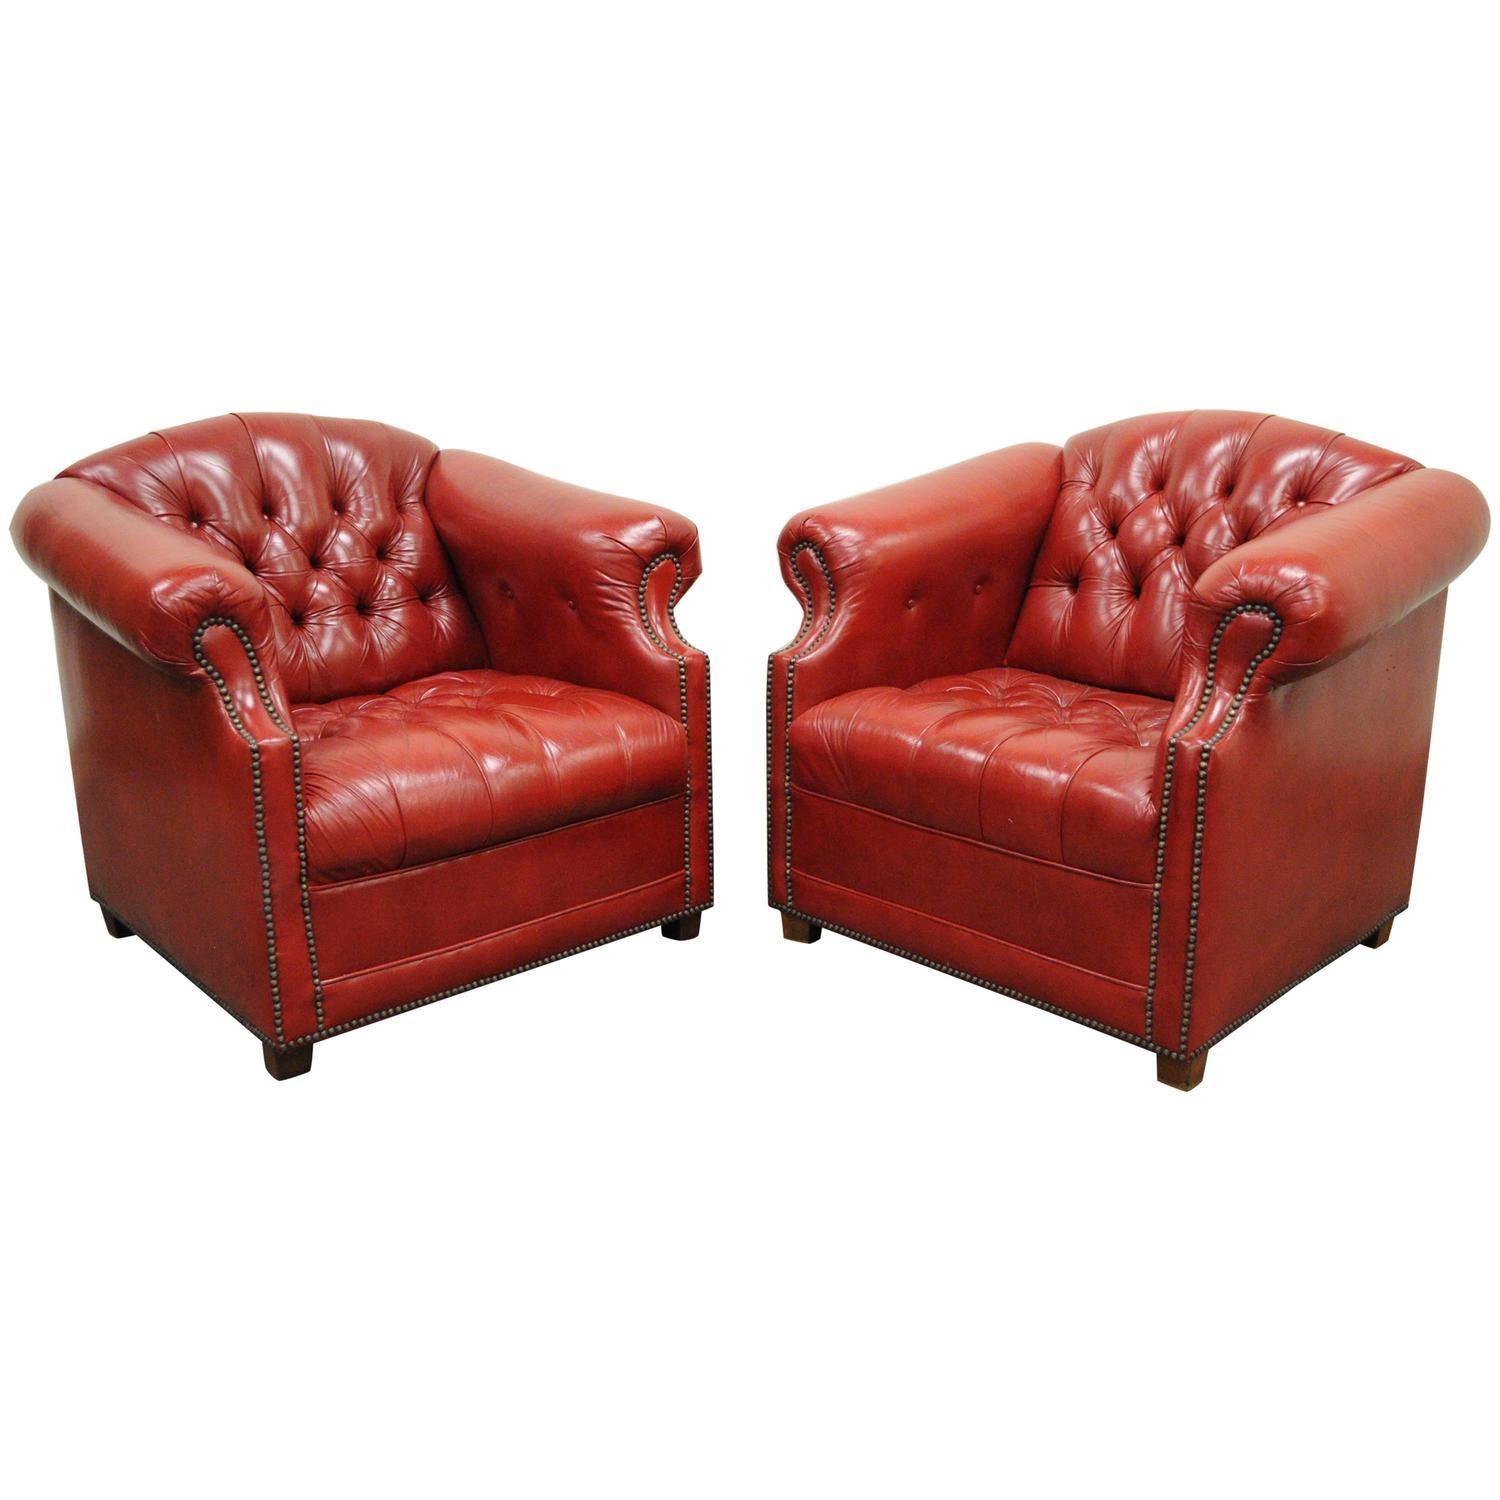 Chesterfield Armchairs – 20 For Sale At 1Stdibs Regarding Red Leather Chesterfield Chairs (Image 7 of 20)